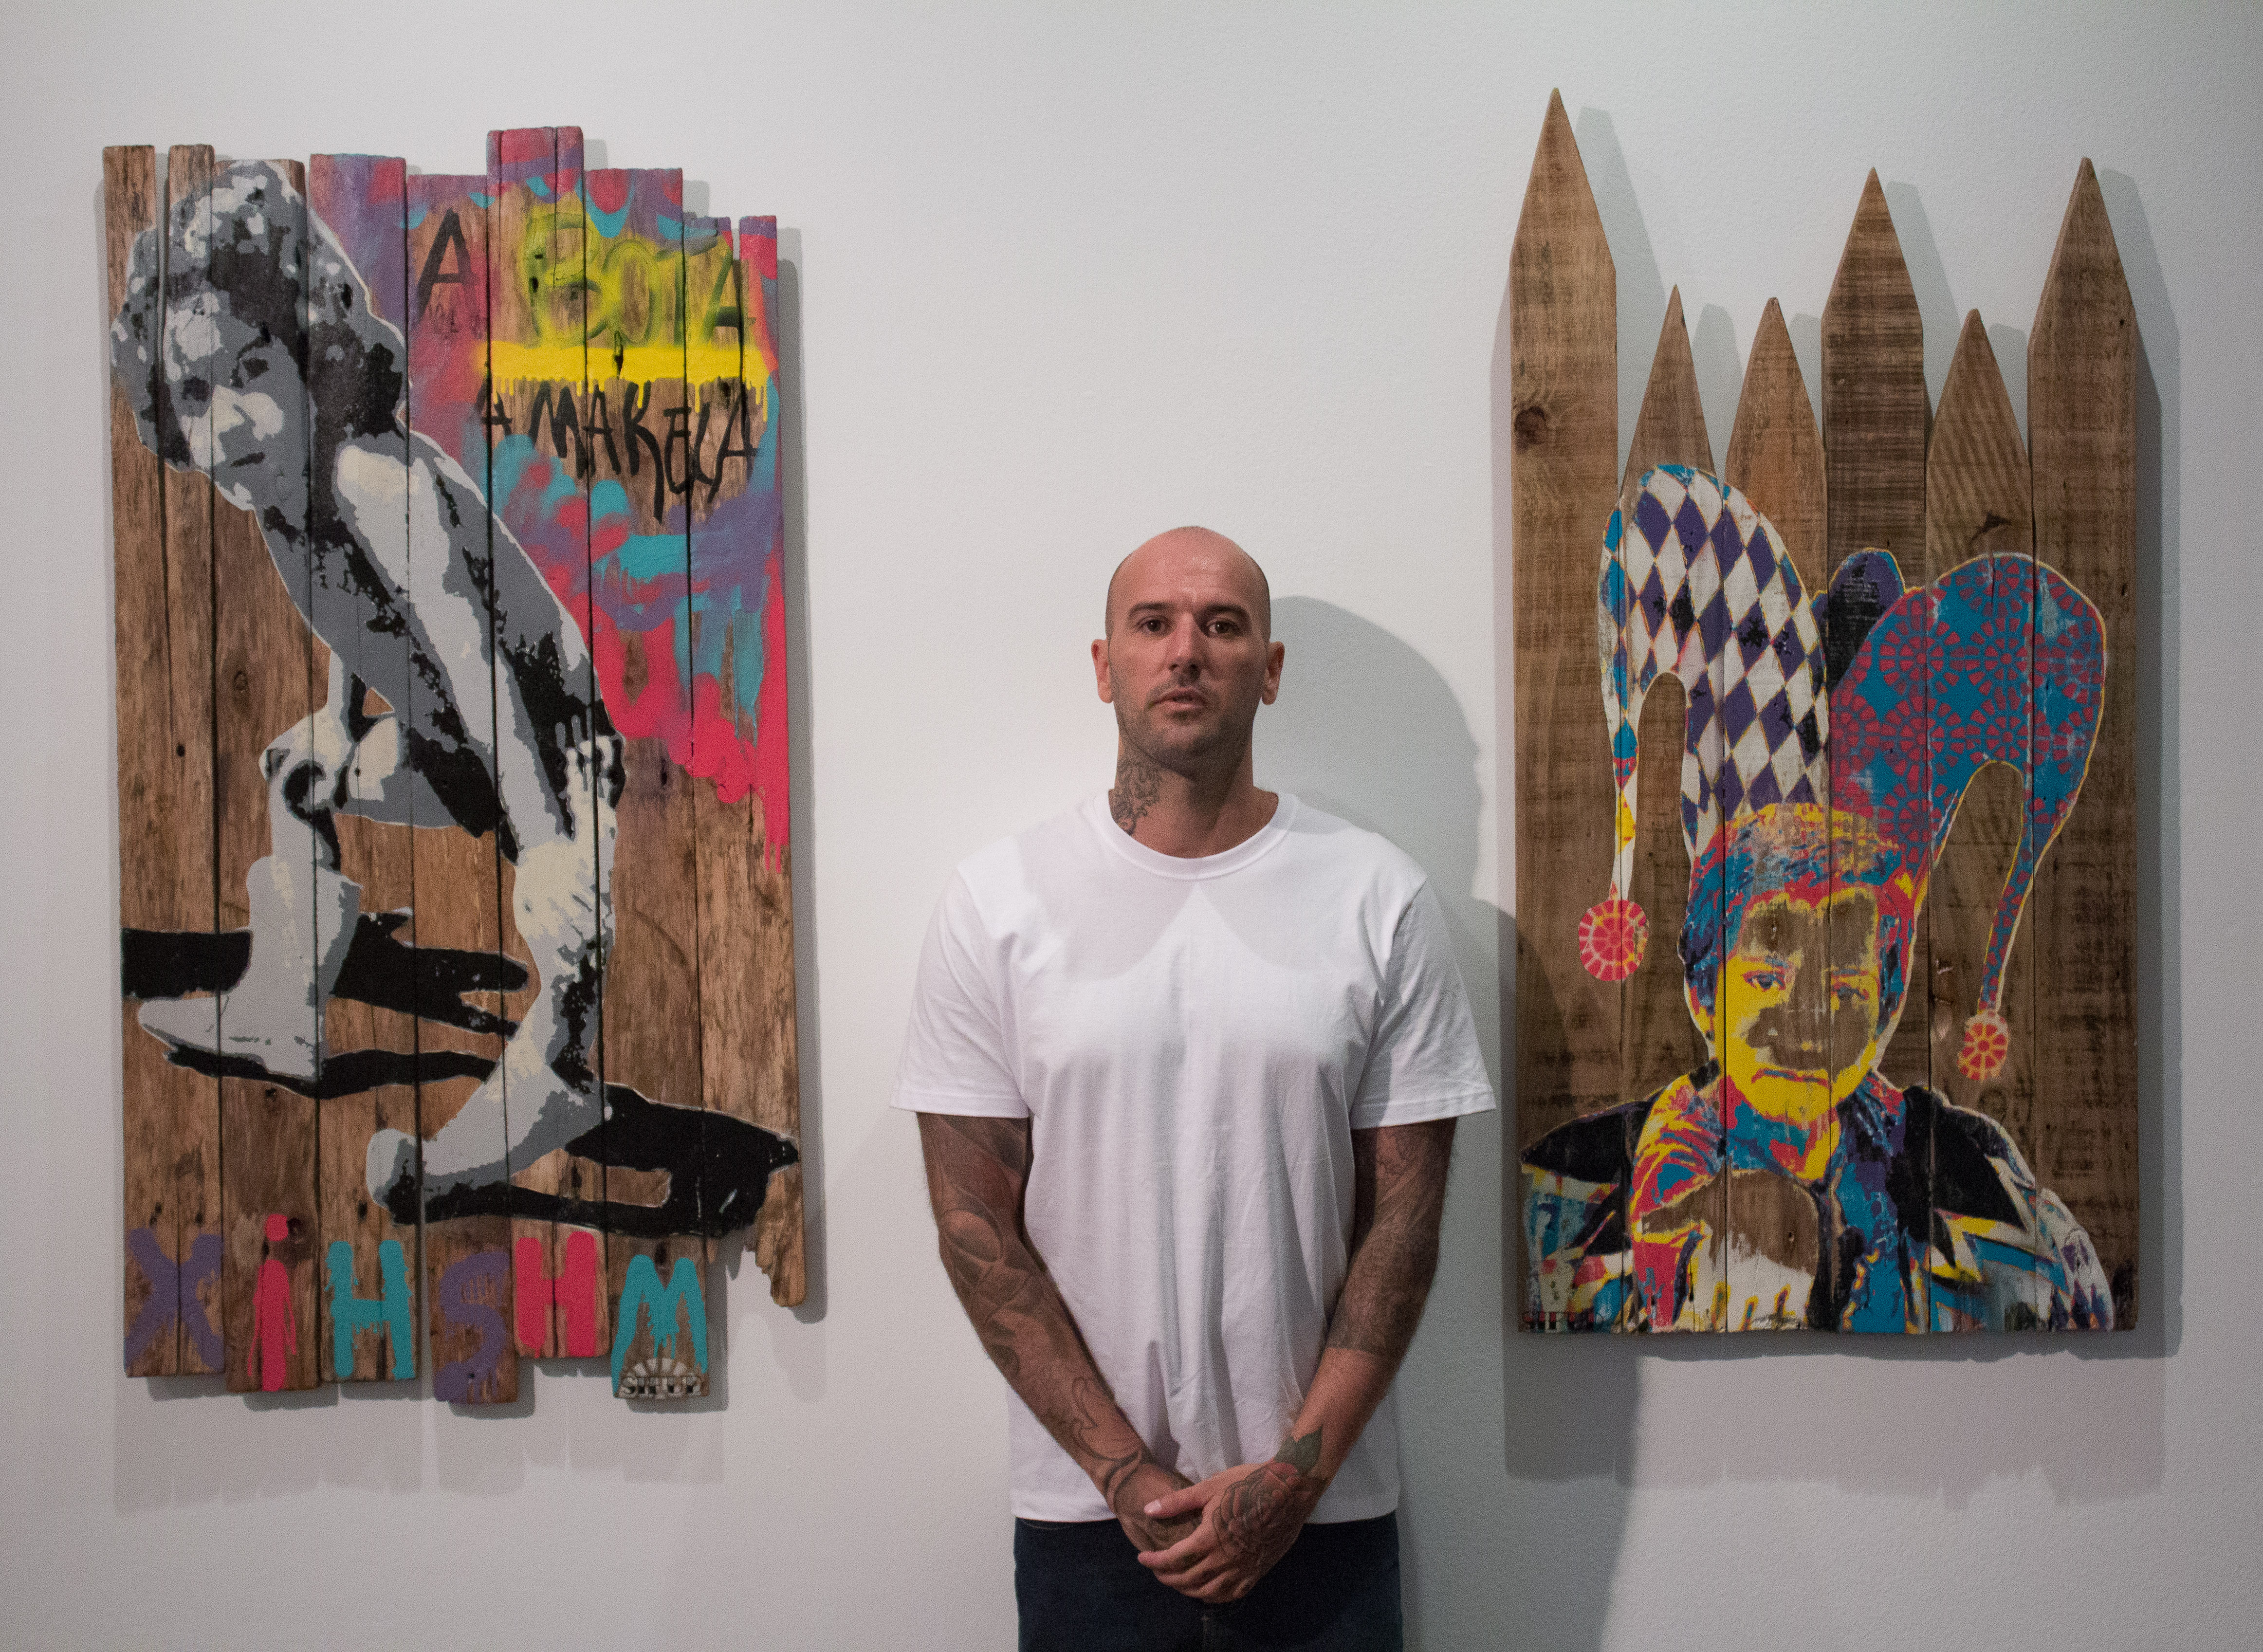 Artist Kleber Cianni standing with